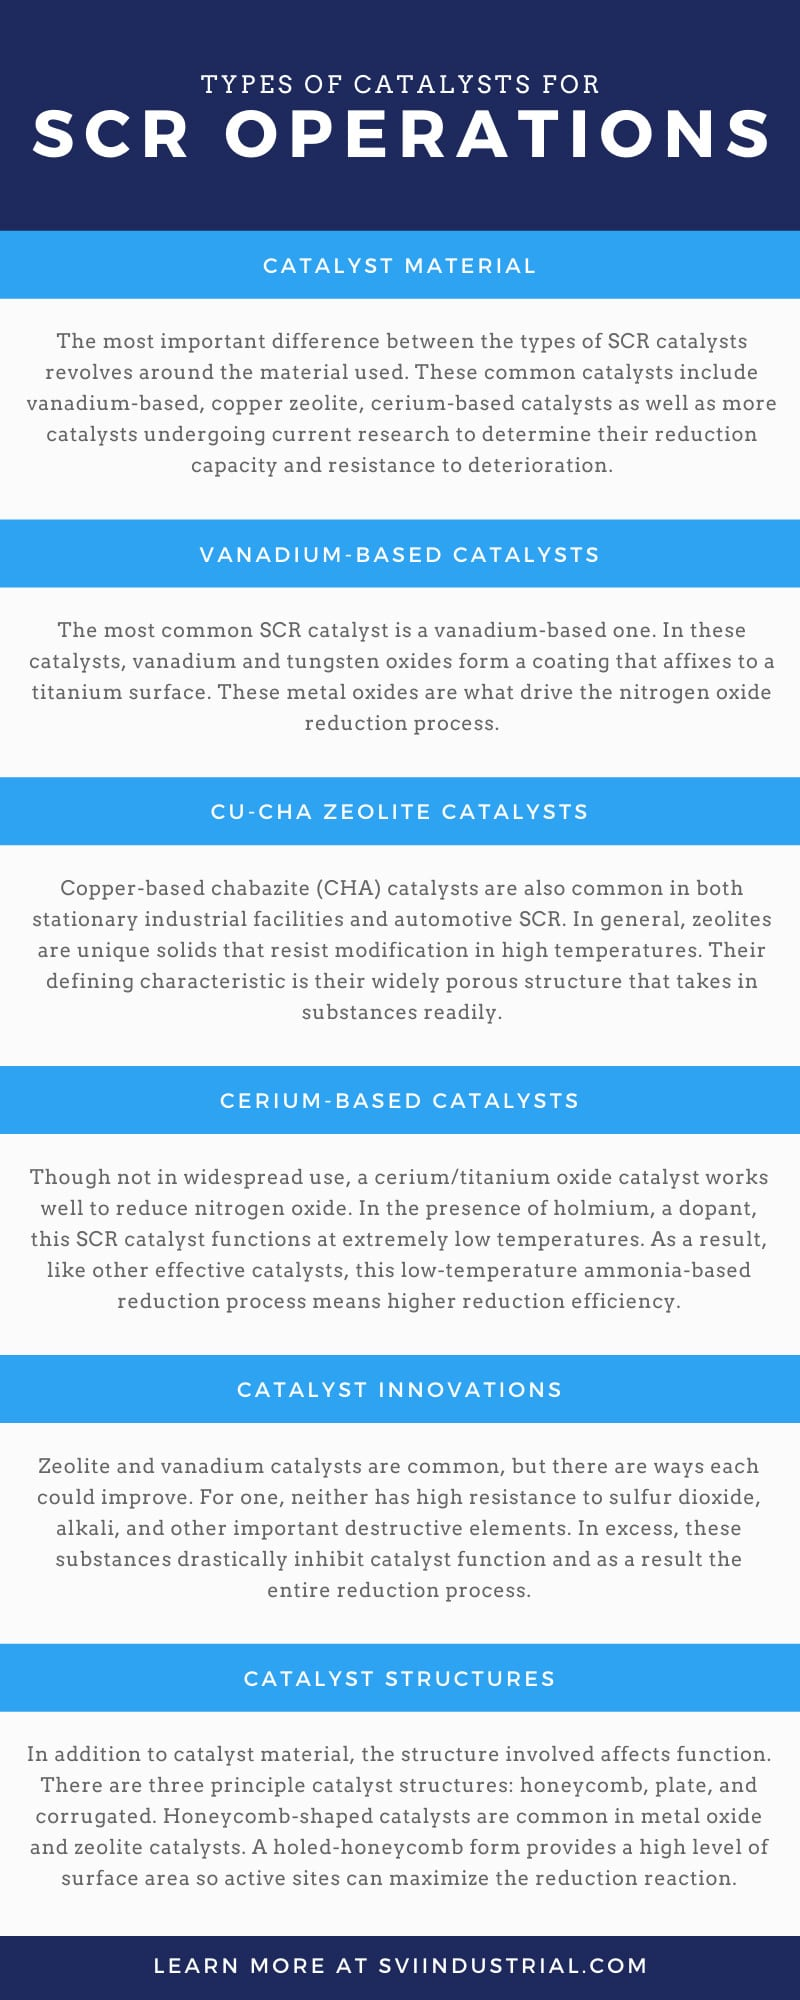 Types of Catalysts for SCR Operations